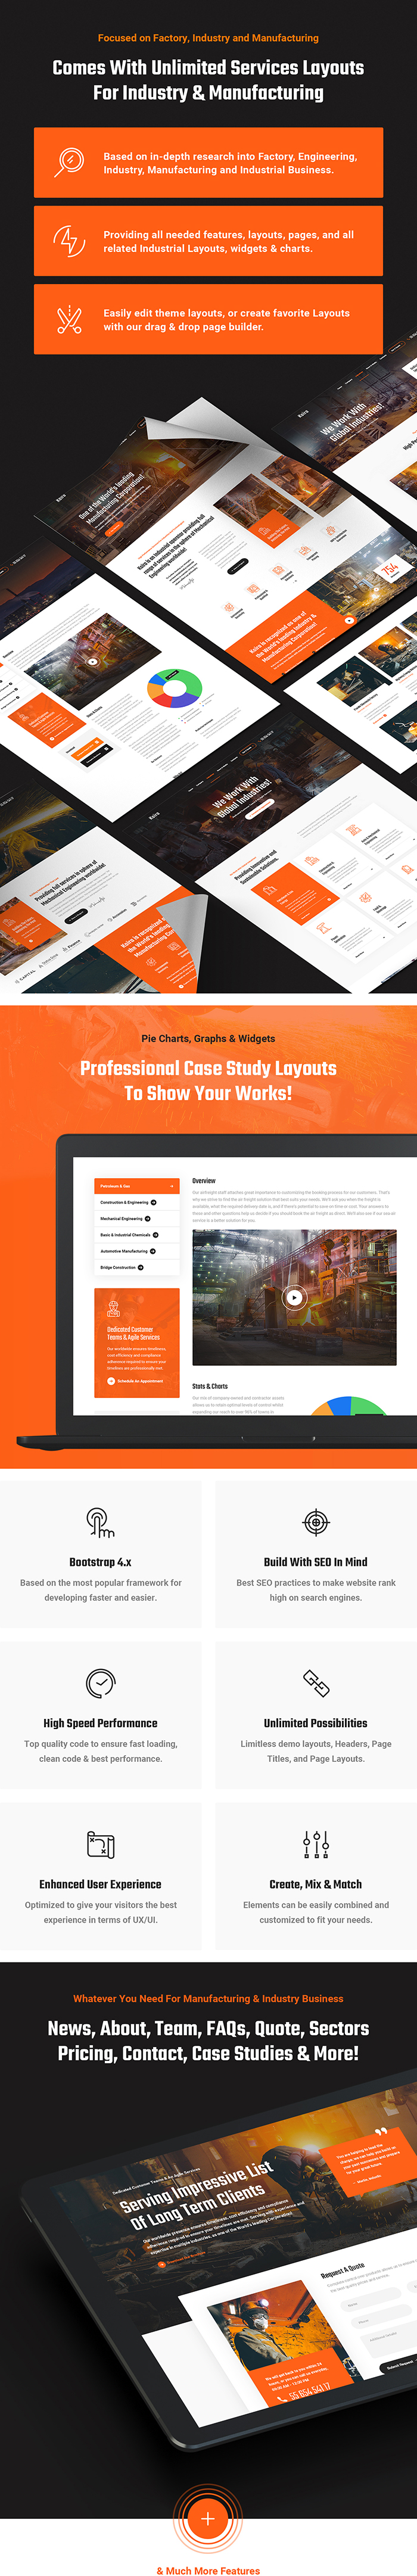 Koira - Industry and Manufacturing HTML5 Template - 7